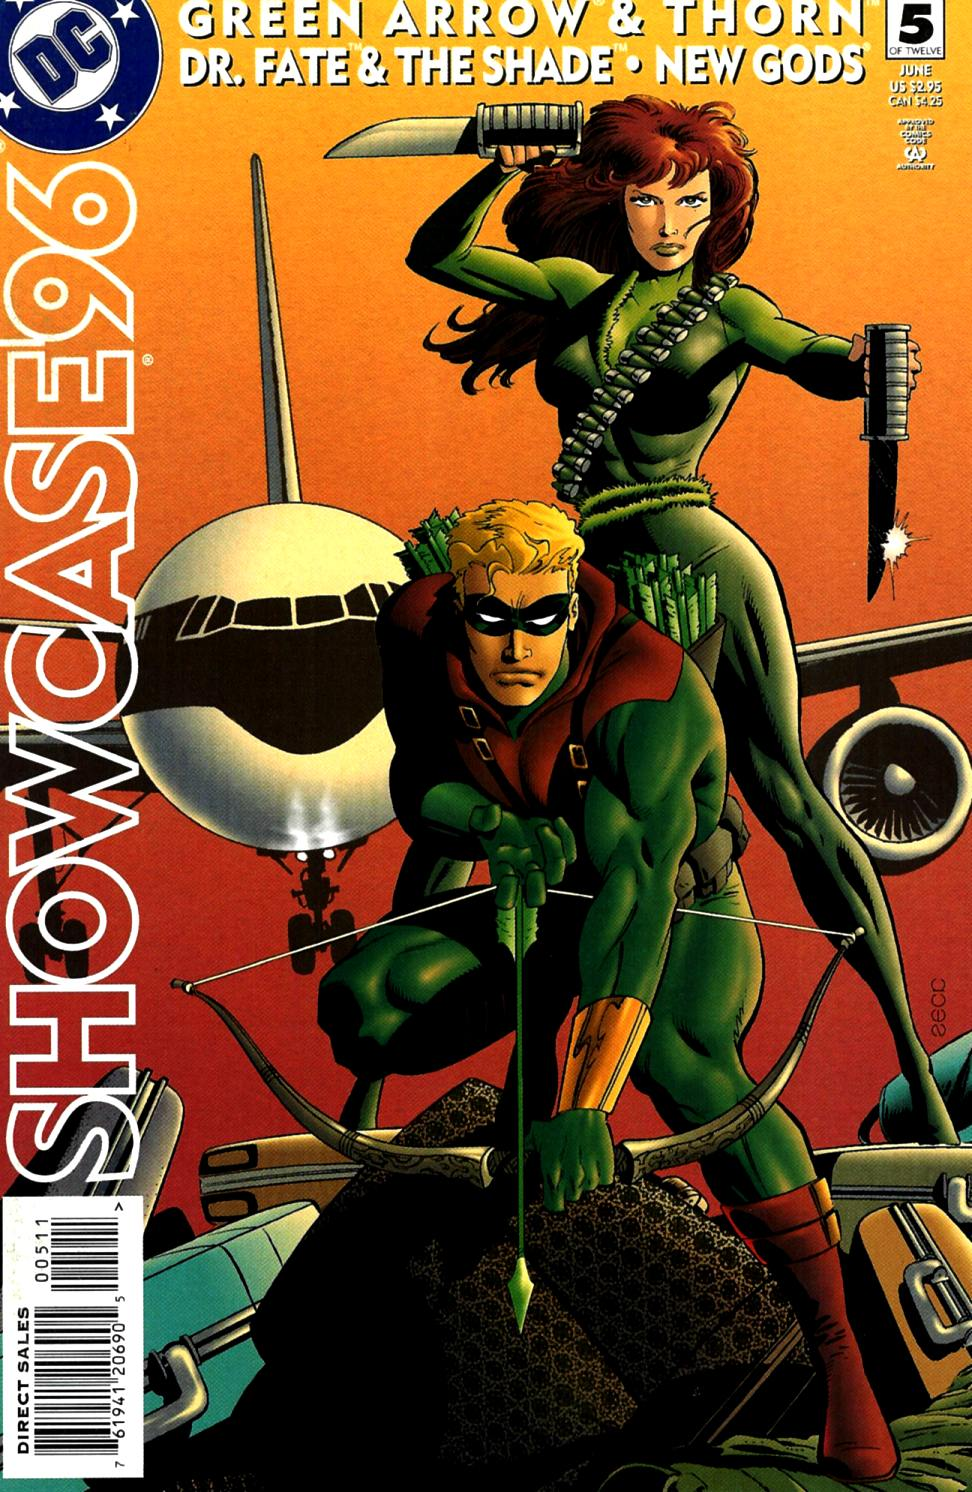 Read online Showcase '96 comic -  Issue #5 - 1